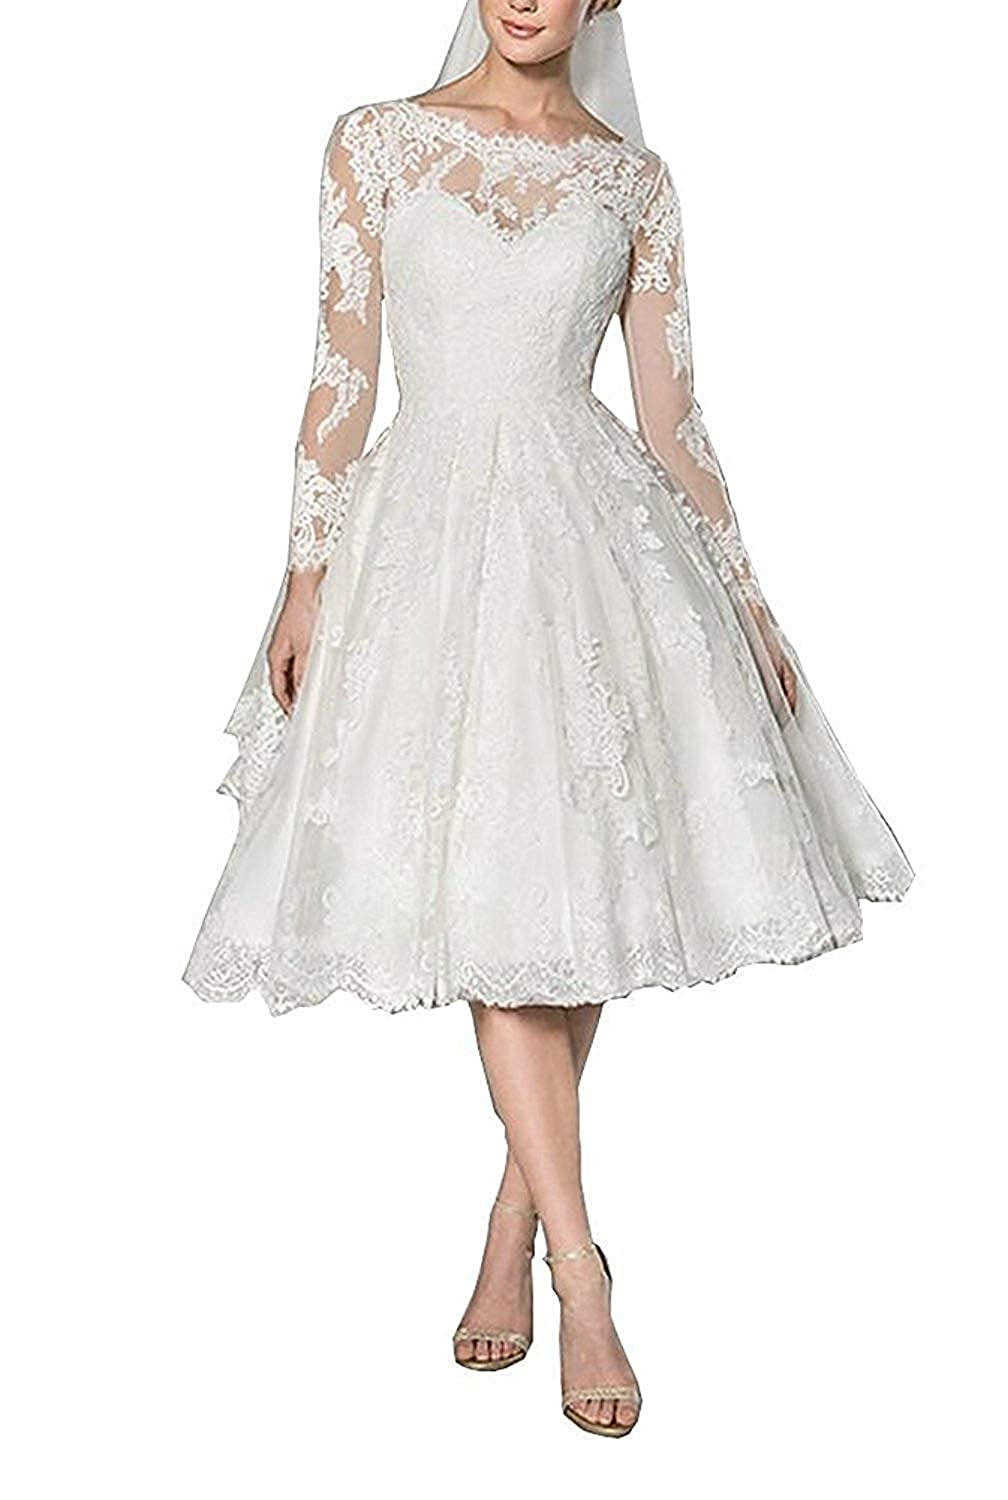 DressyMe Women's Vintage Short Wedding Dresses for Bride with Sleeves Applique